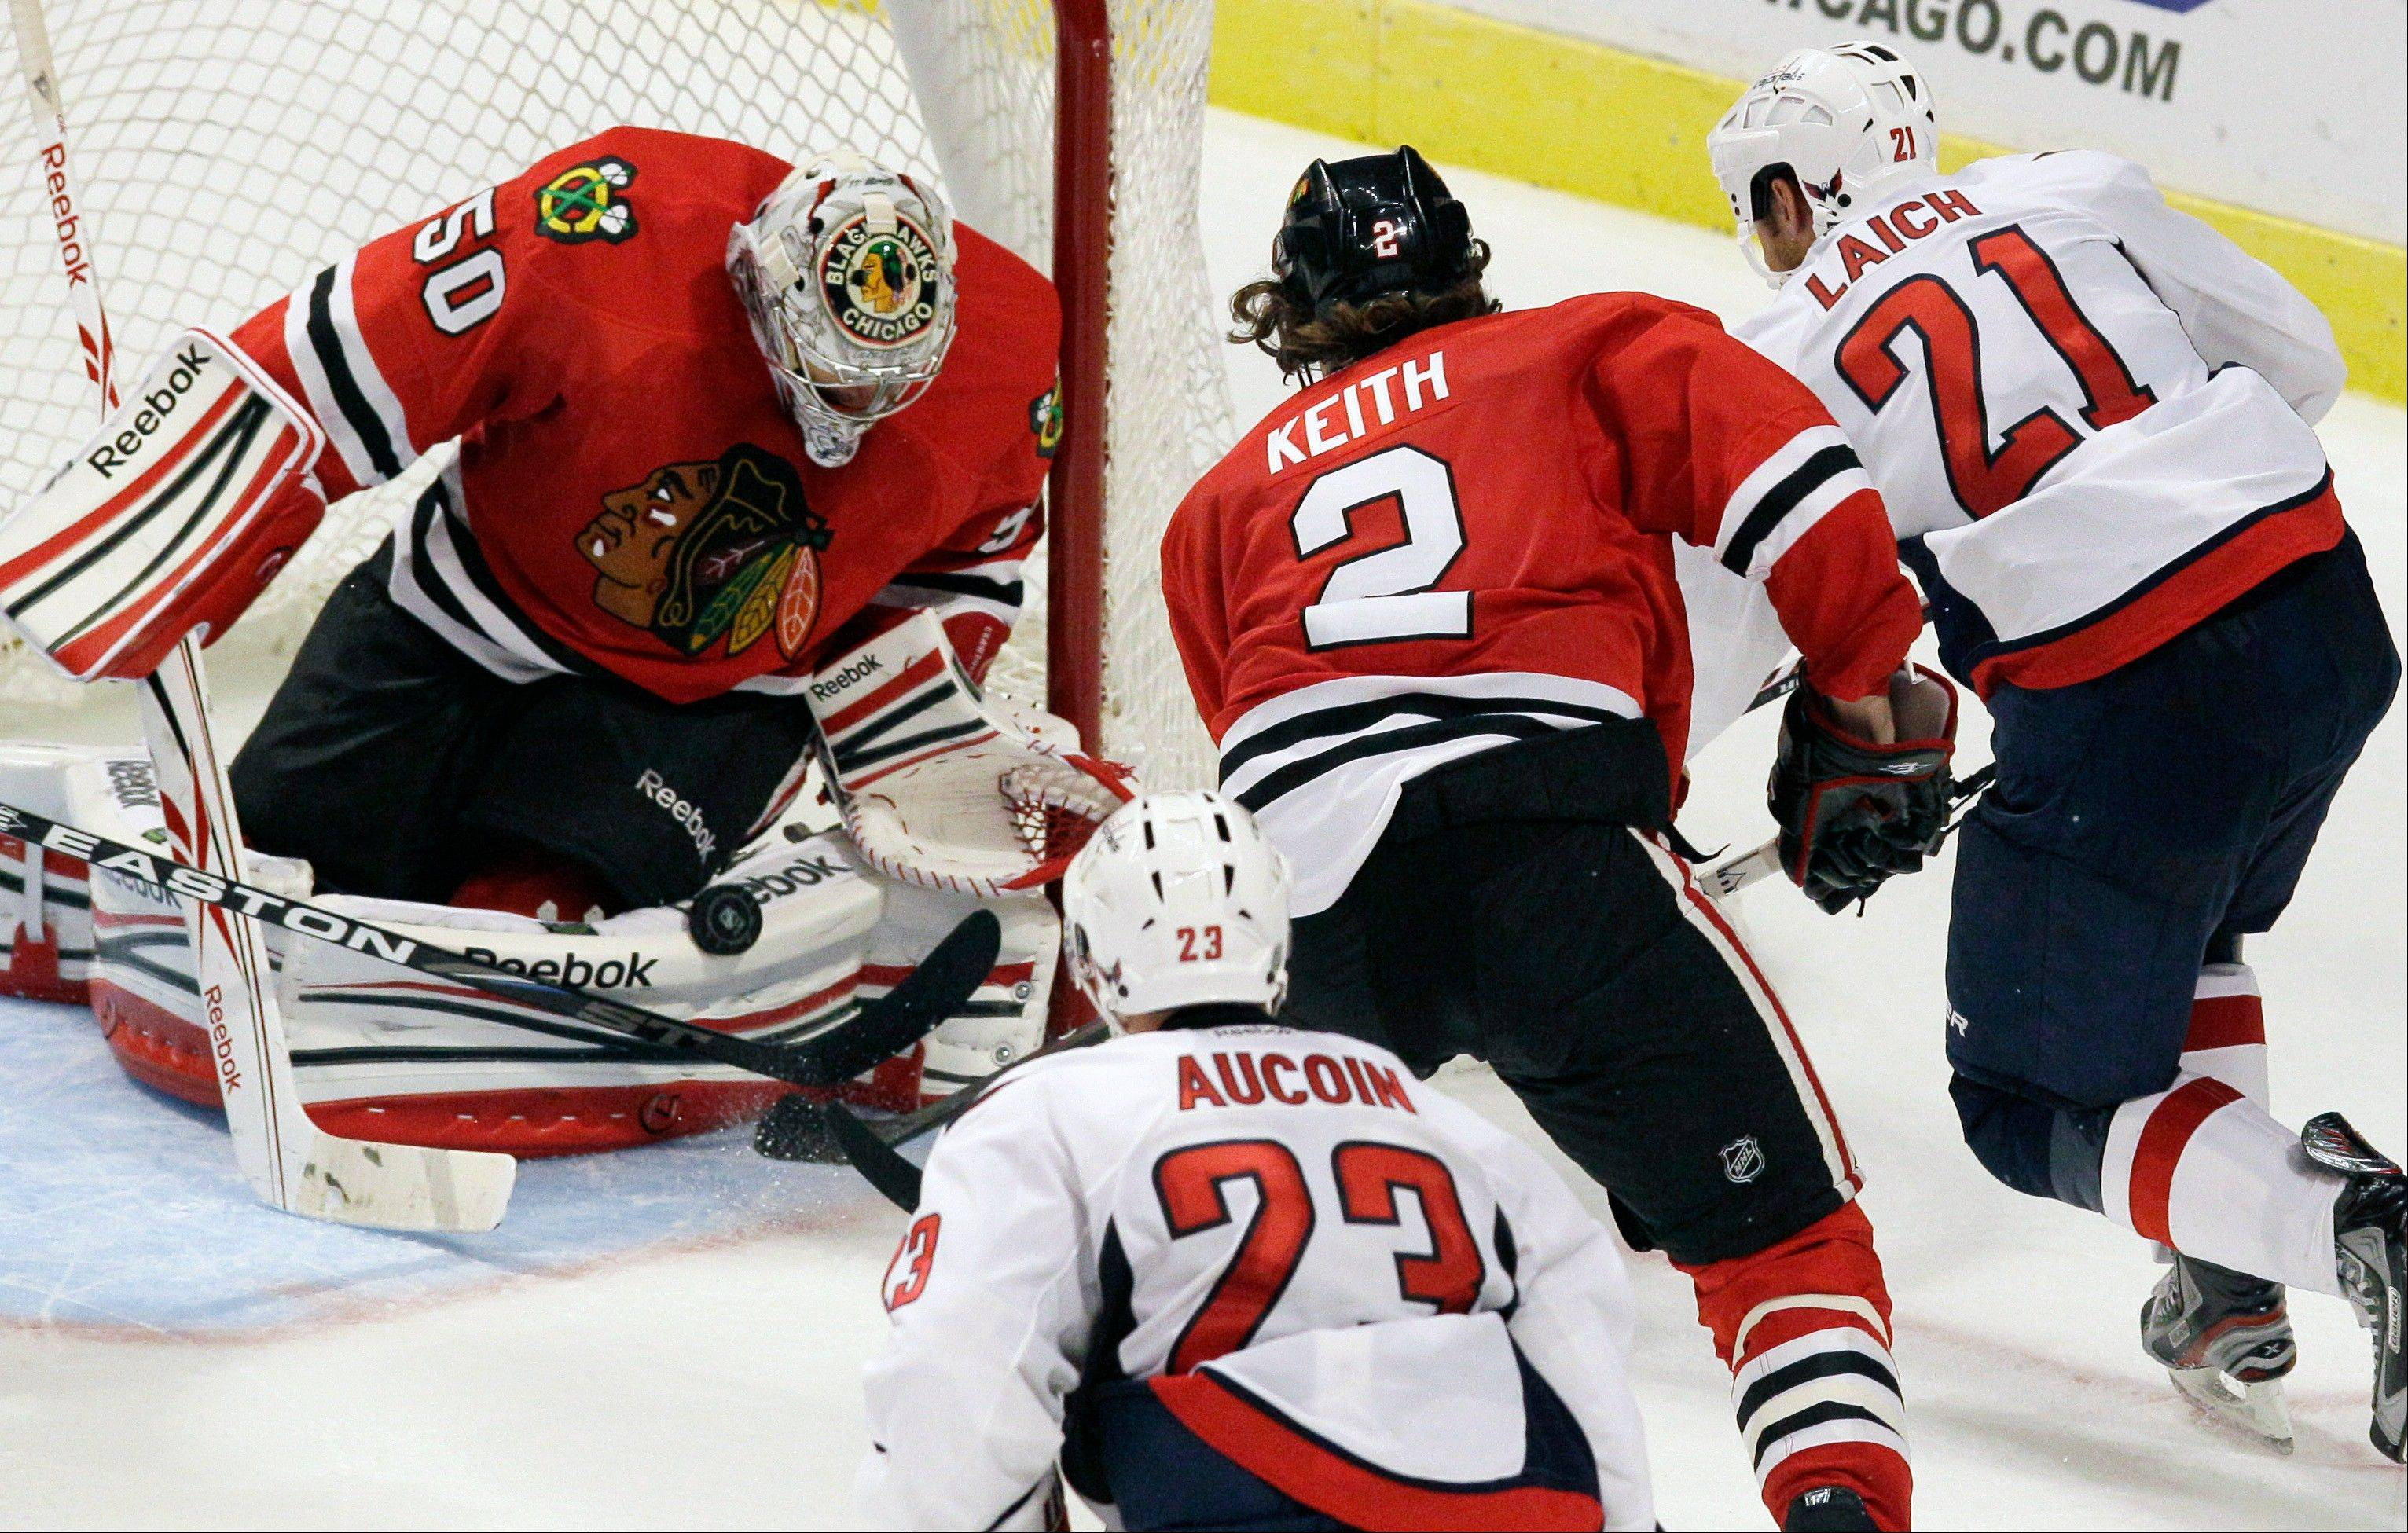 Blackhawks goalie Corey Crawford (50) saves a shot by Washington's Brooks Laich as Duncan Keith (2) looks on during the third period of the Hawks' 3-2 preseason victory Friday night at the United Center.